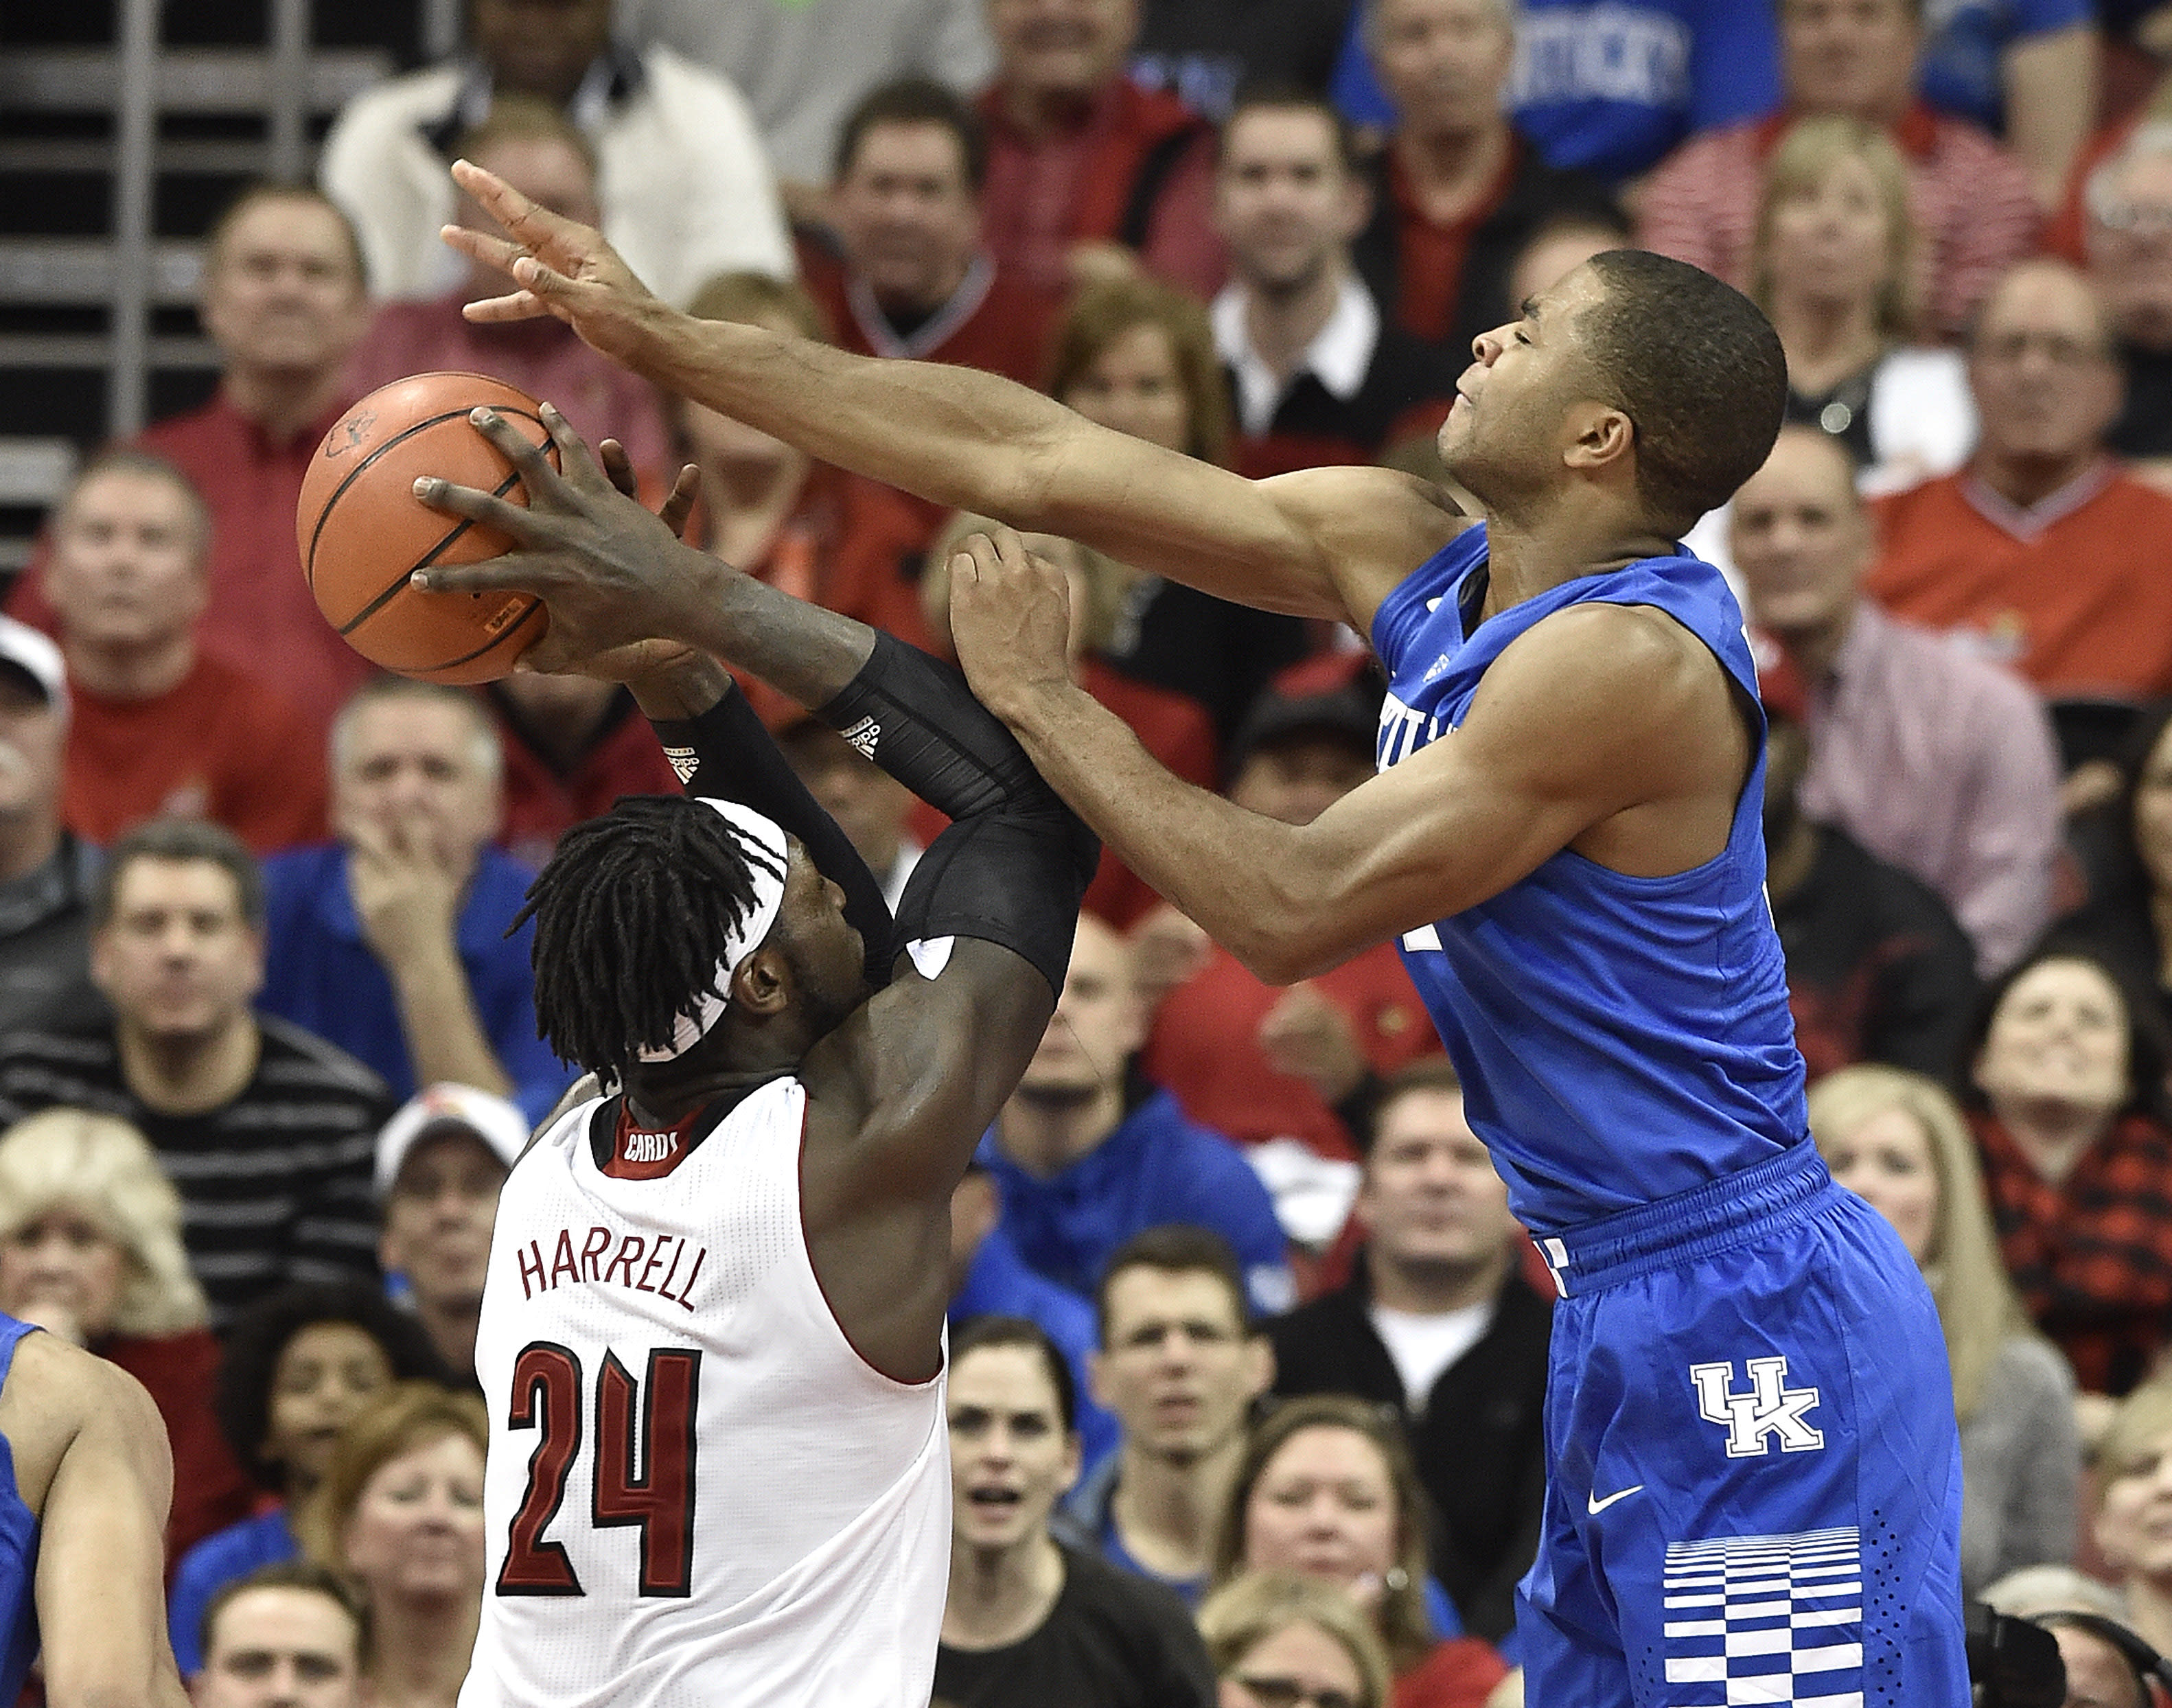 Top-ranked Kentucky heads into 9-day layoff